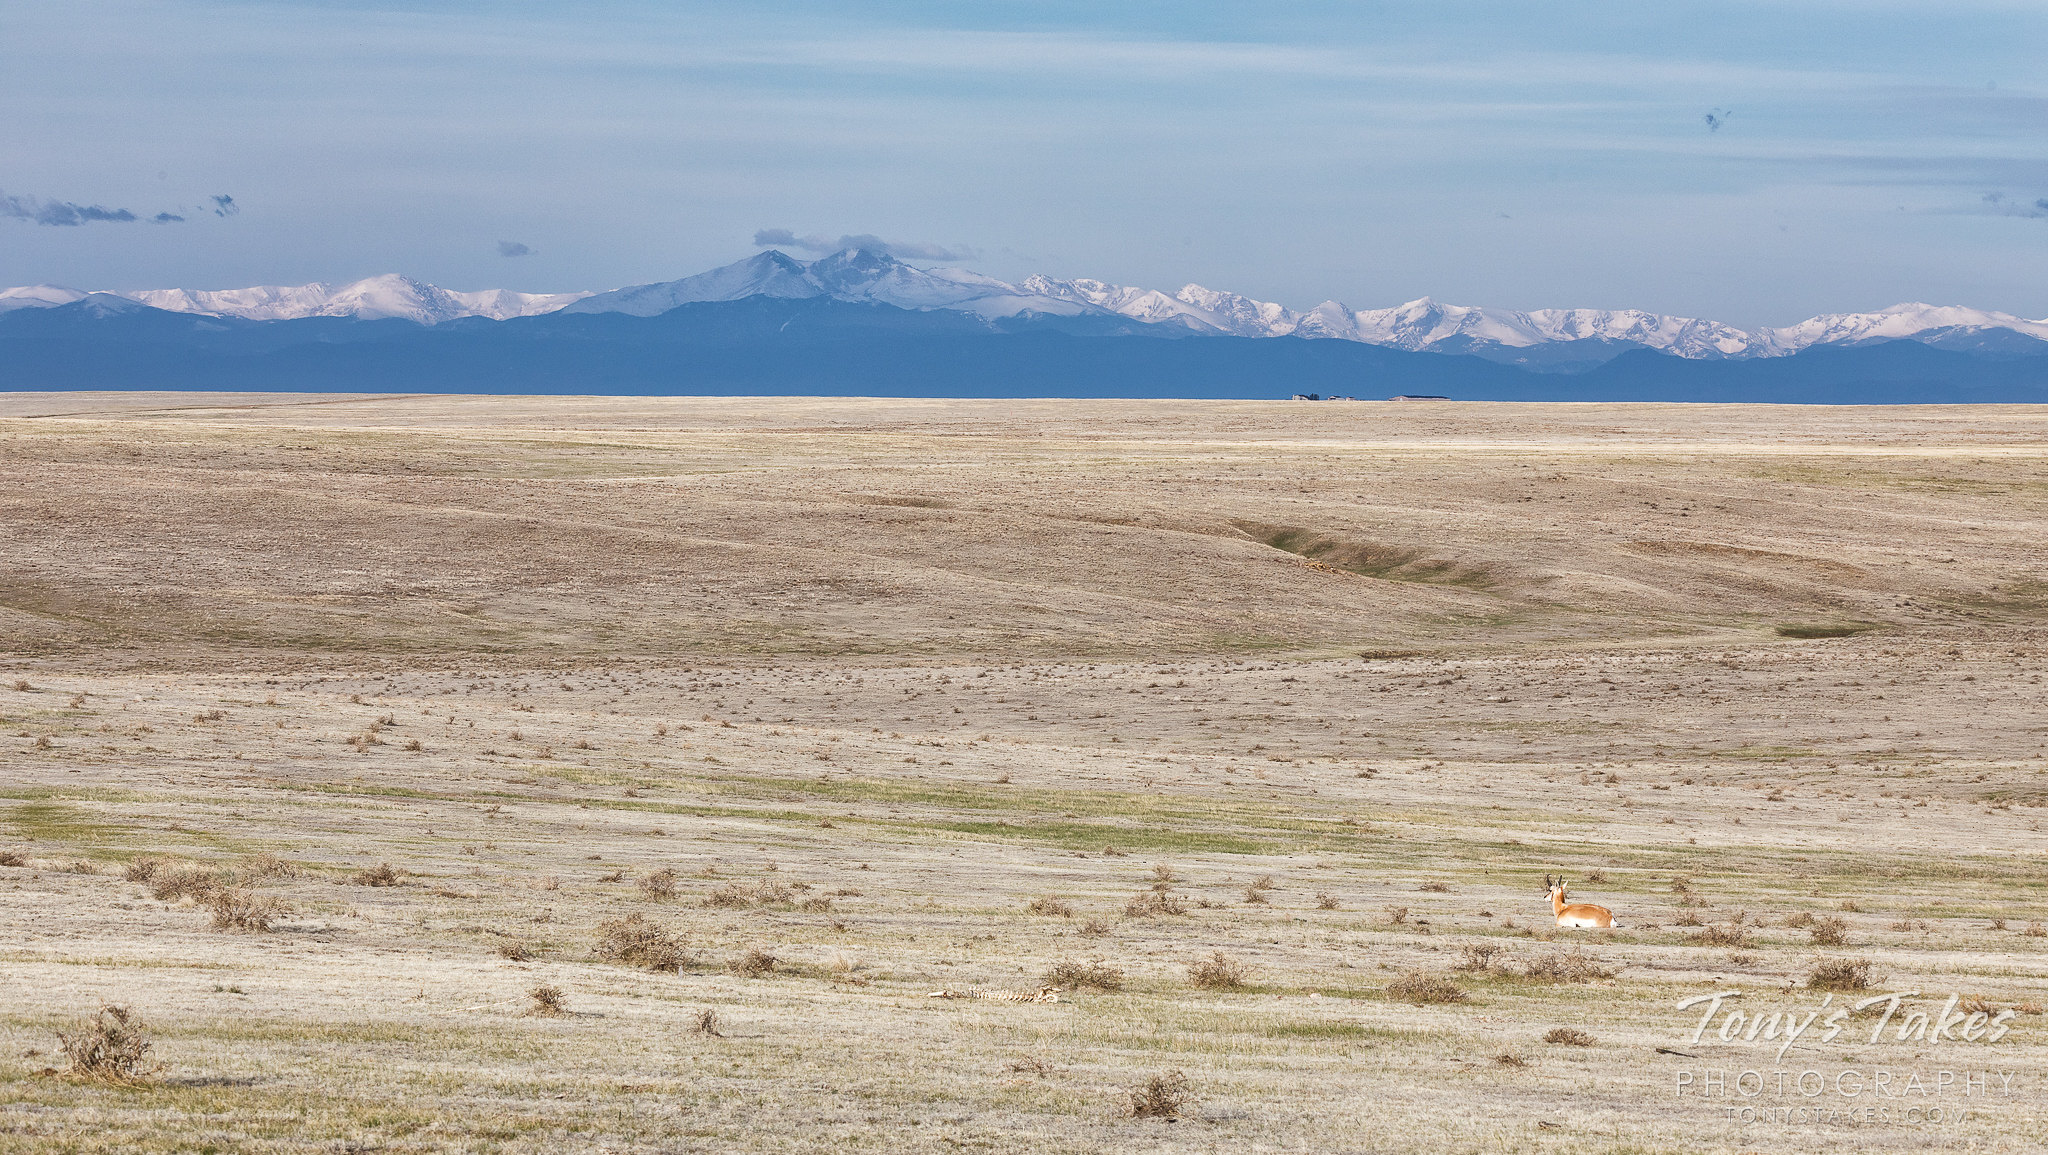 Even the pronghorn stop to check out Colorado's amazing scenery